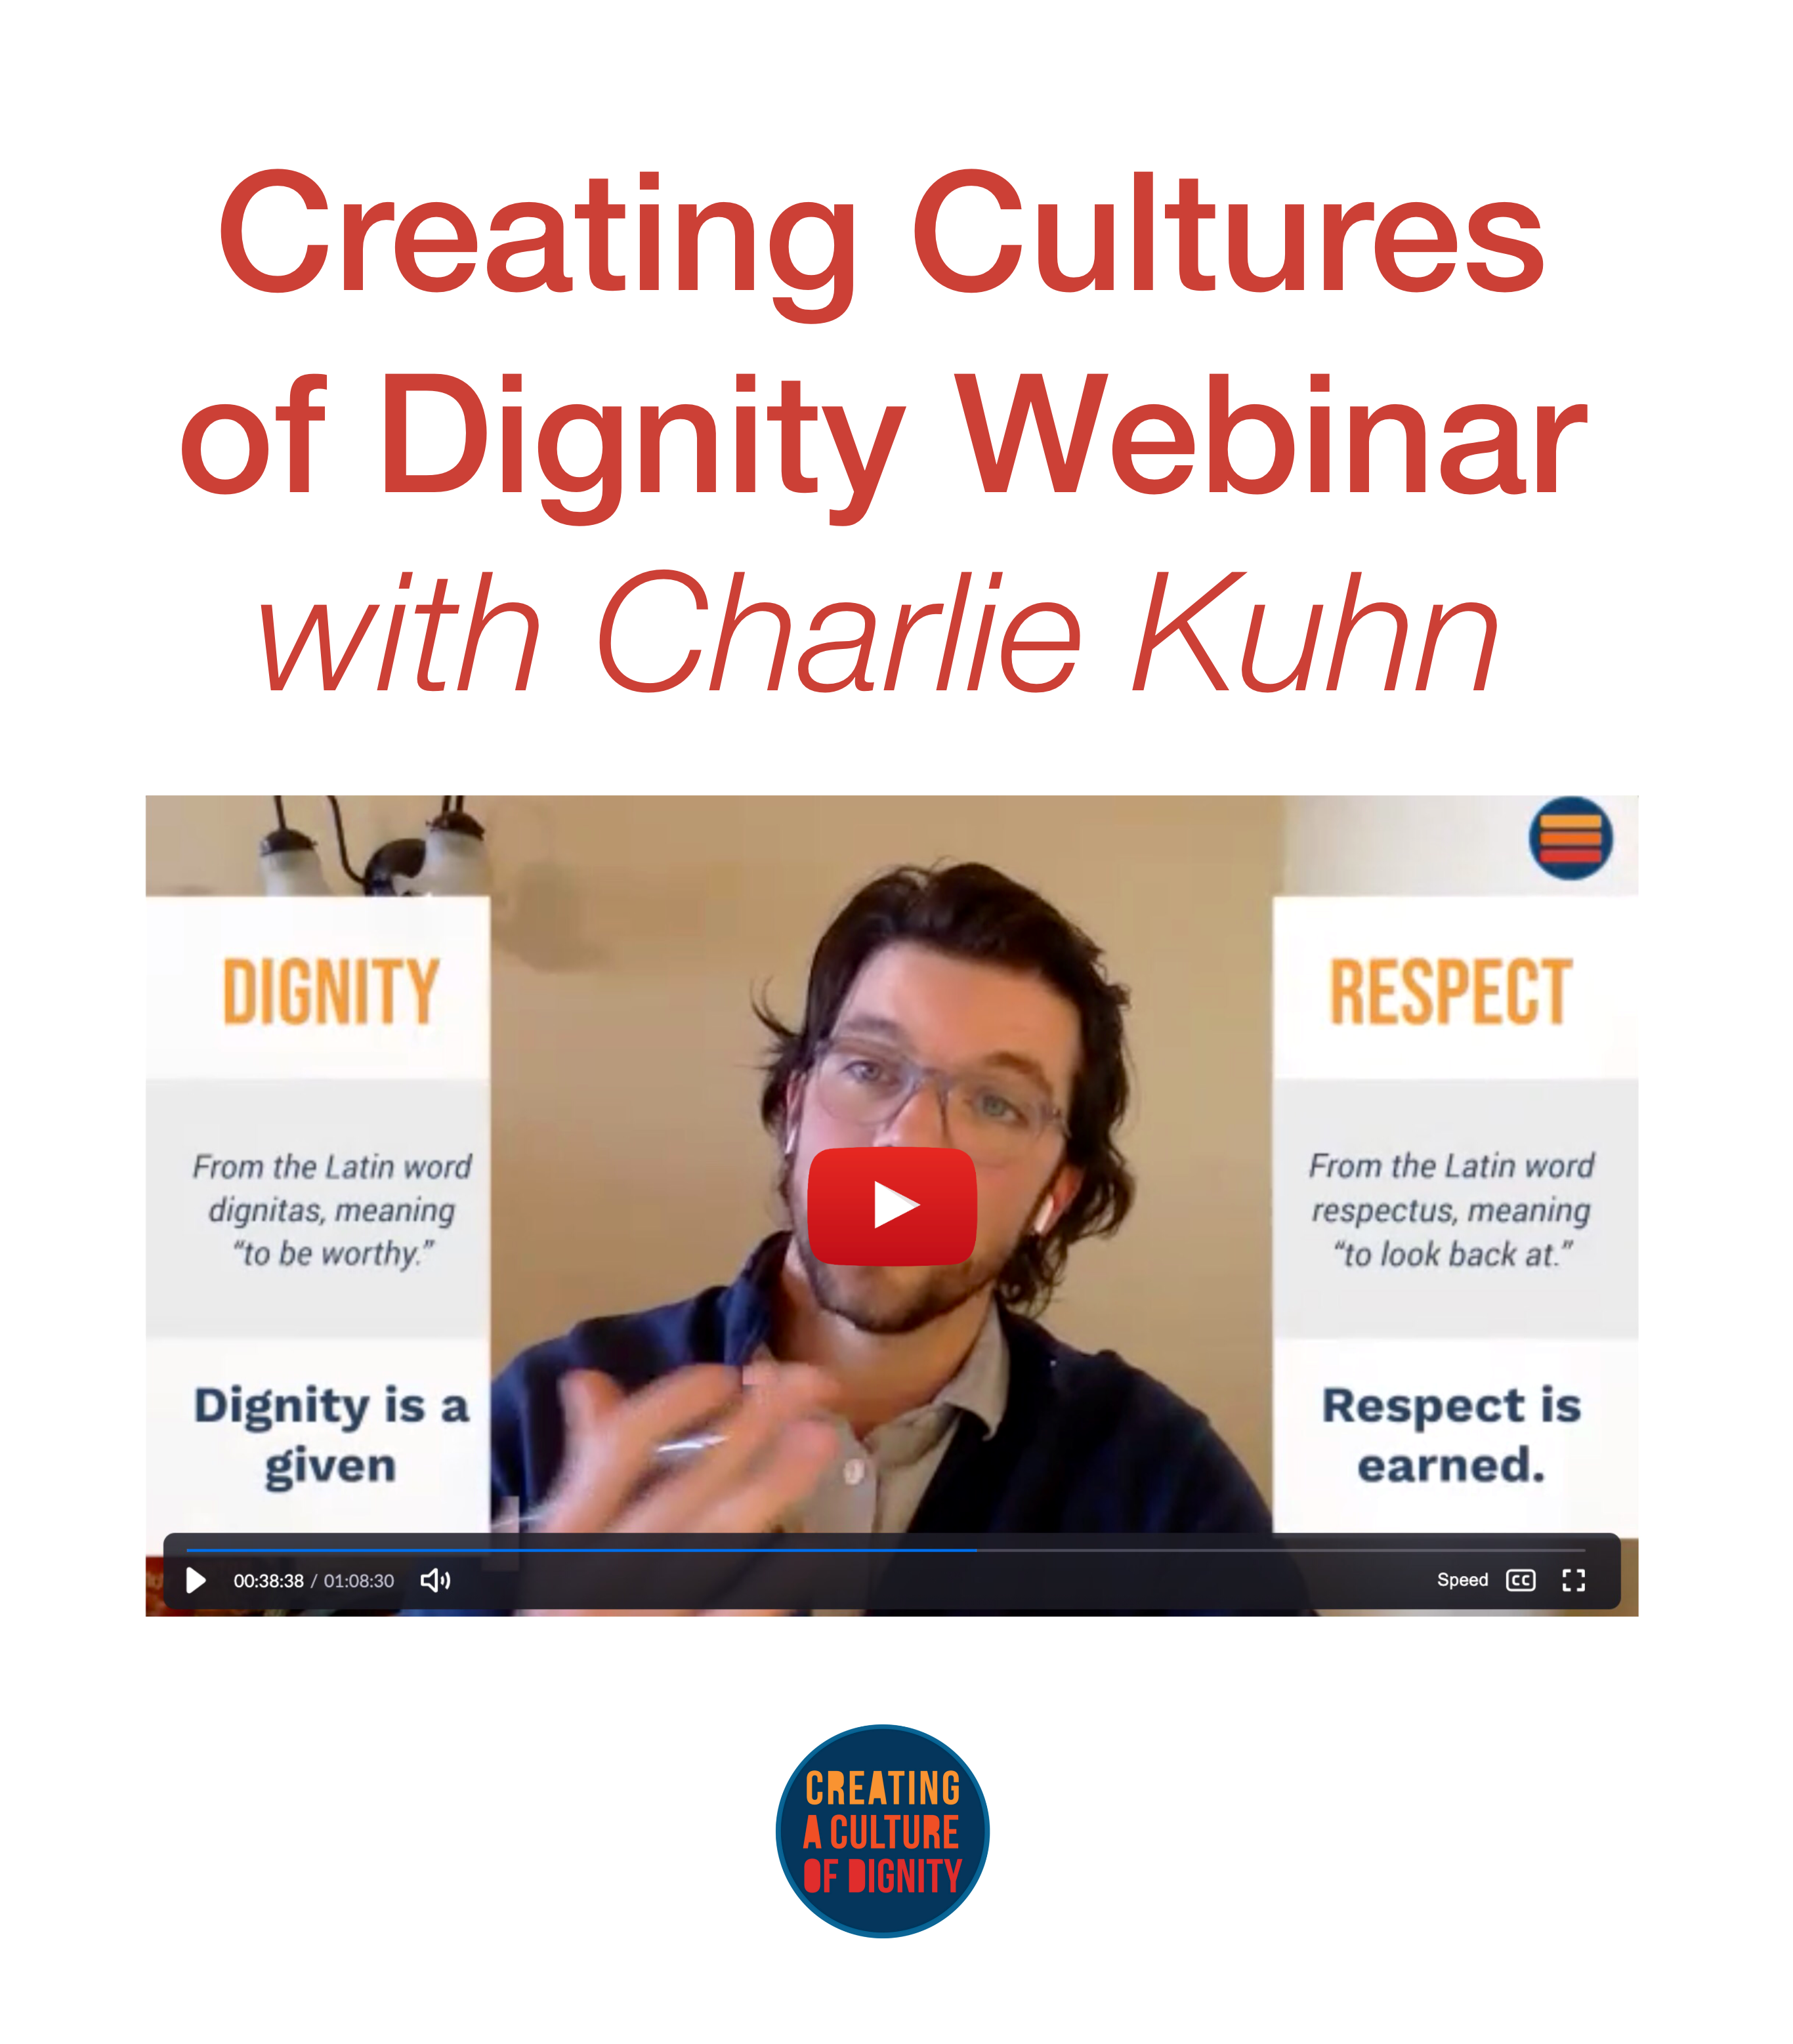 Creating Cultures of Dignity Webinar with Charlie Kuhn